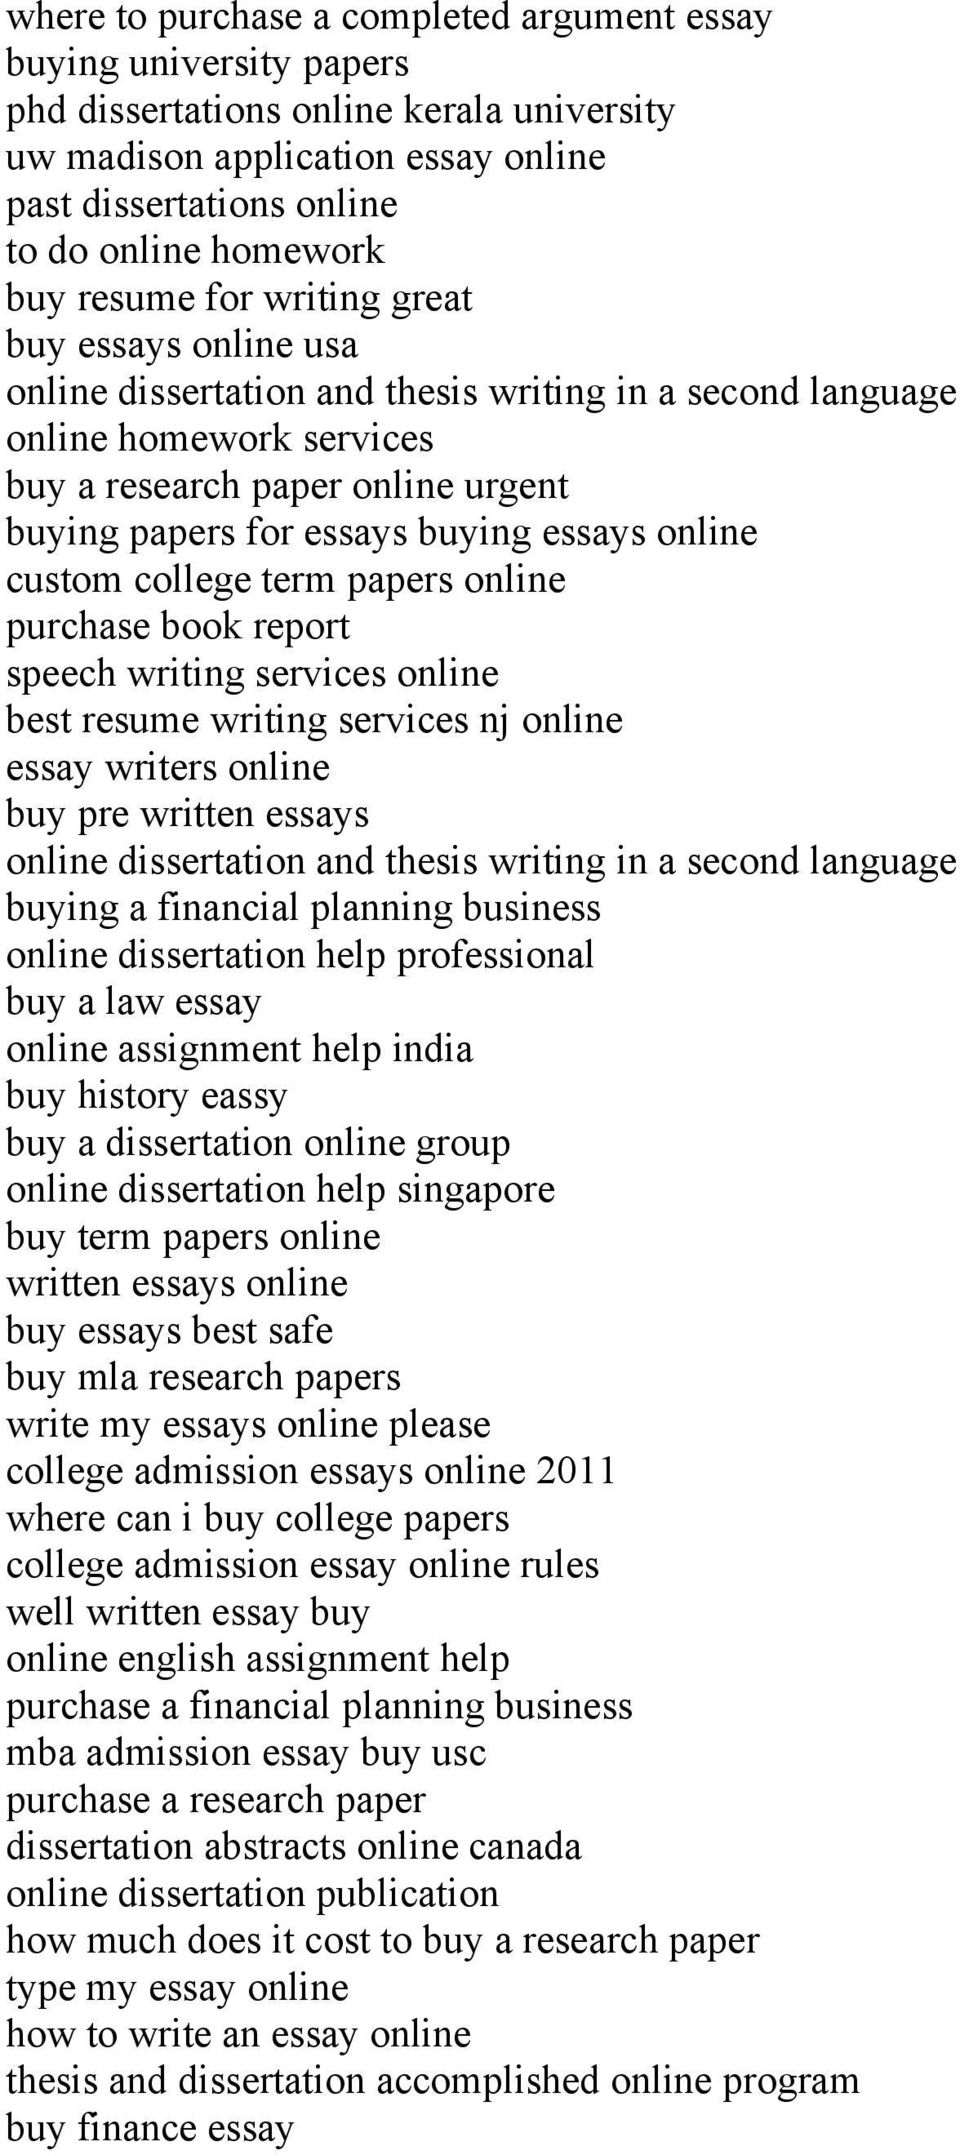 Gibbs Reflective Cycle Essays Buying Essays Online Custom College Term Papers Online Purchase Book Report  Speech Writing Services Online Best Seven Army Values Essay also How To Save Mother Earth Essay Can You Buy Essay Online  Pdf Essay India